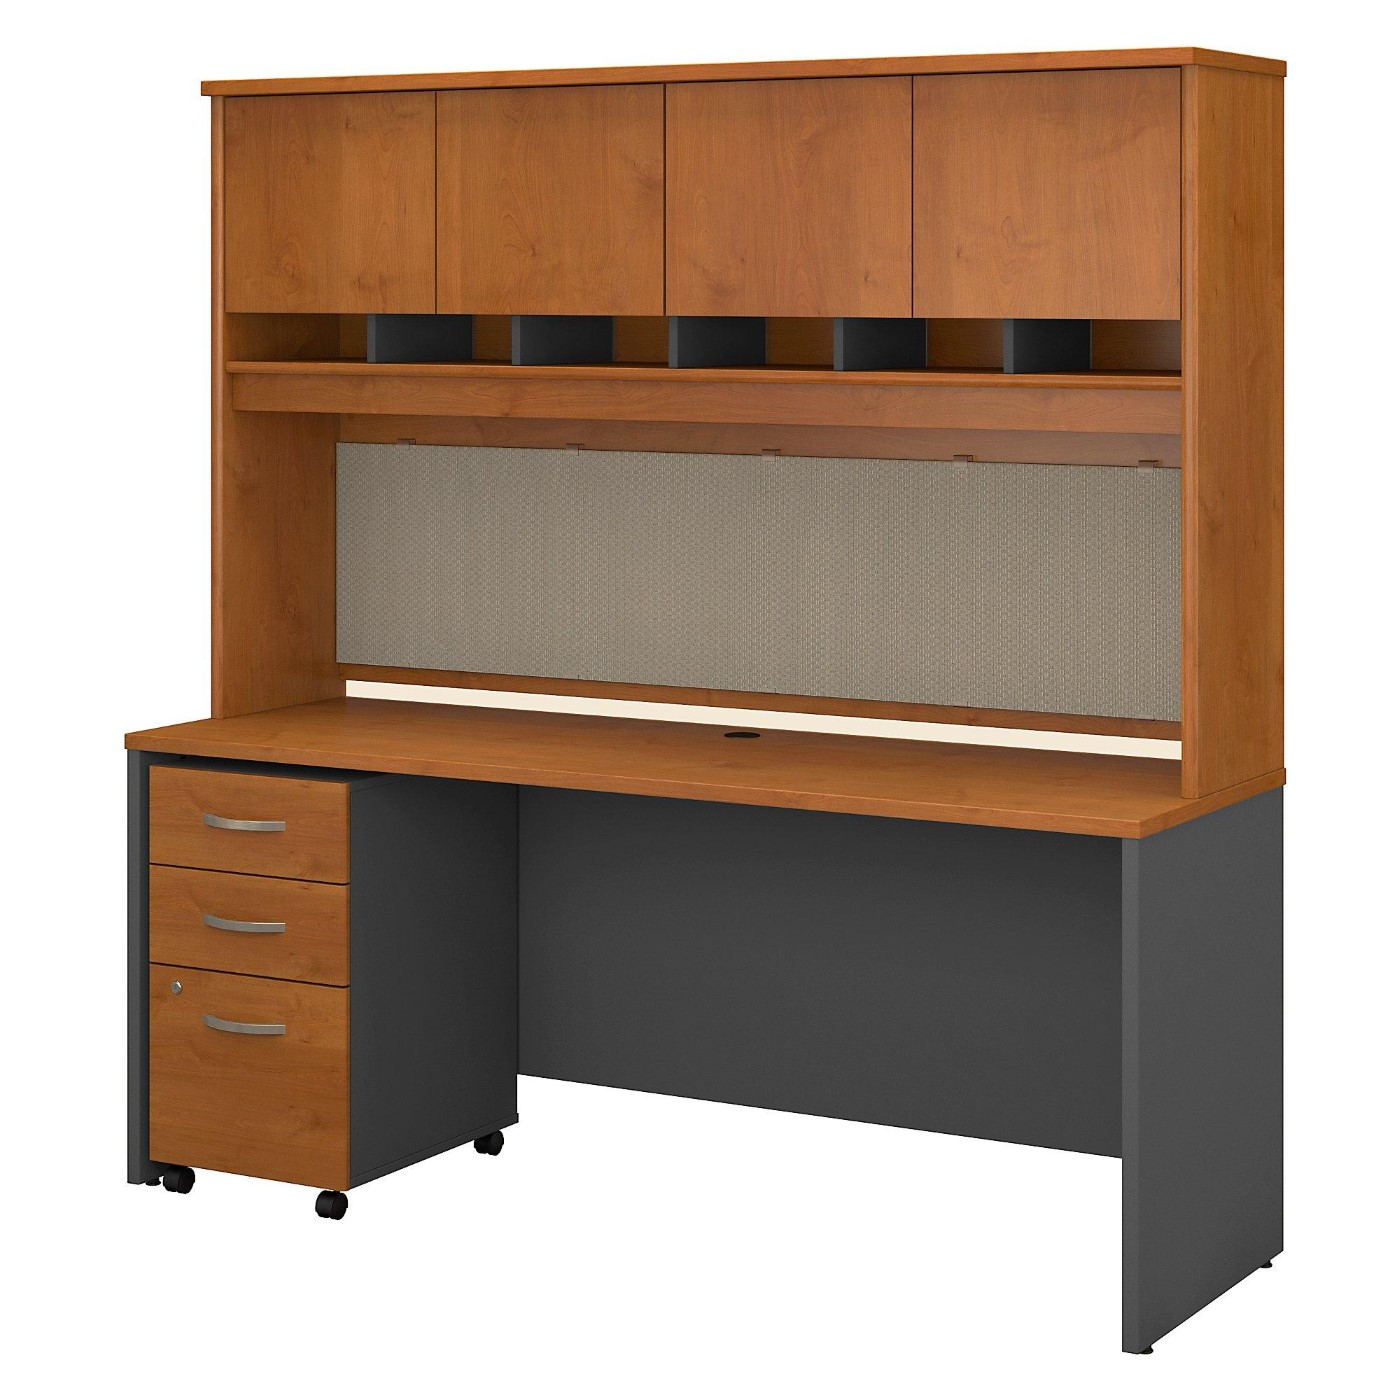 <font color=#c60><b>BUSH BUSINESS FURNITURE SERIES C 72W X 24D OFFICE DESK WITH HUTCH AND MOBILE FILE CABINET. FREE SHIPPING</font></b>